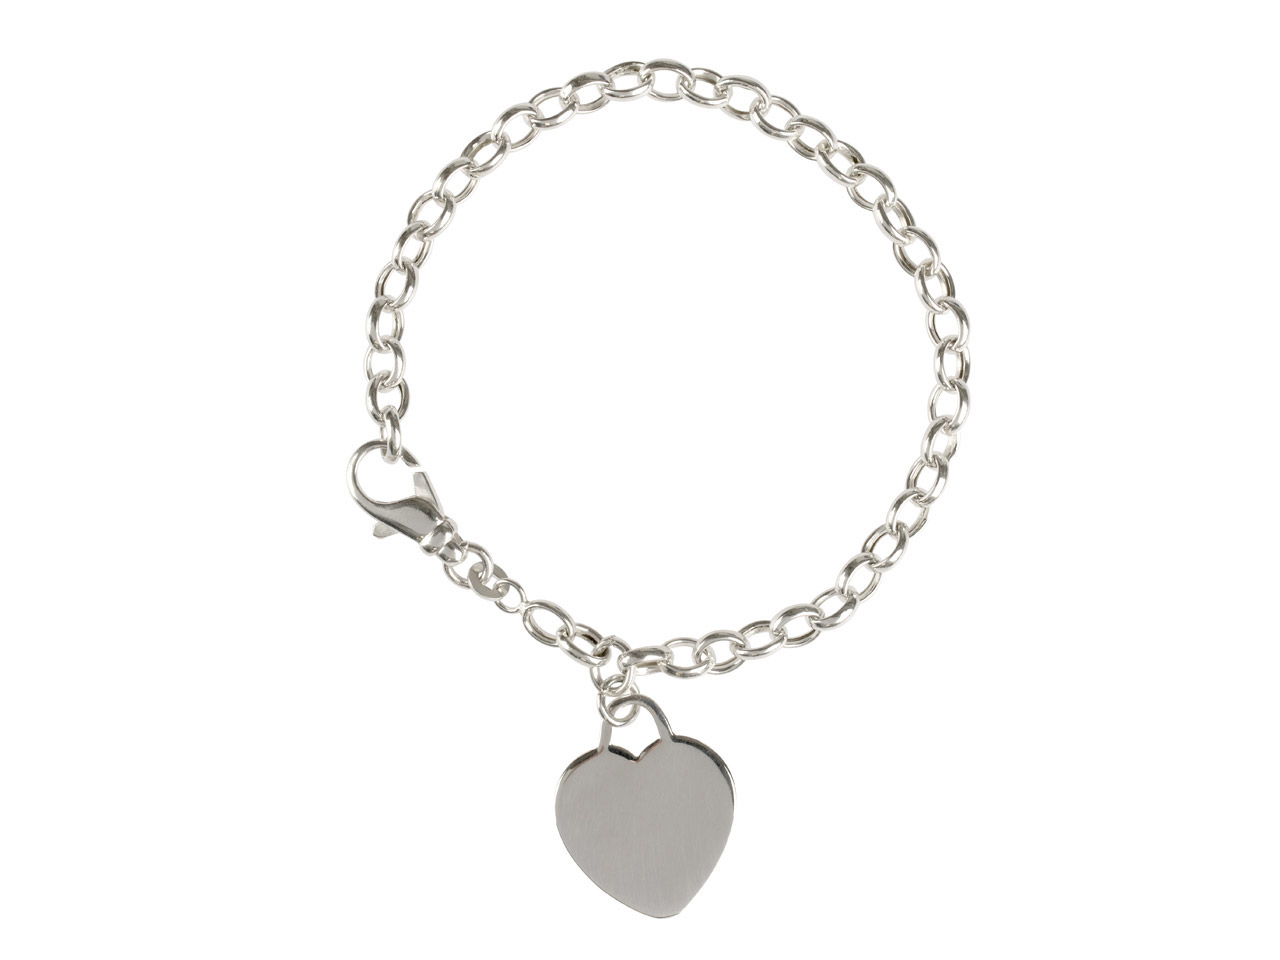 Sterling Silver Bracelet With Plain Heart Charm, 7.5